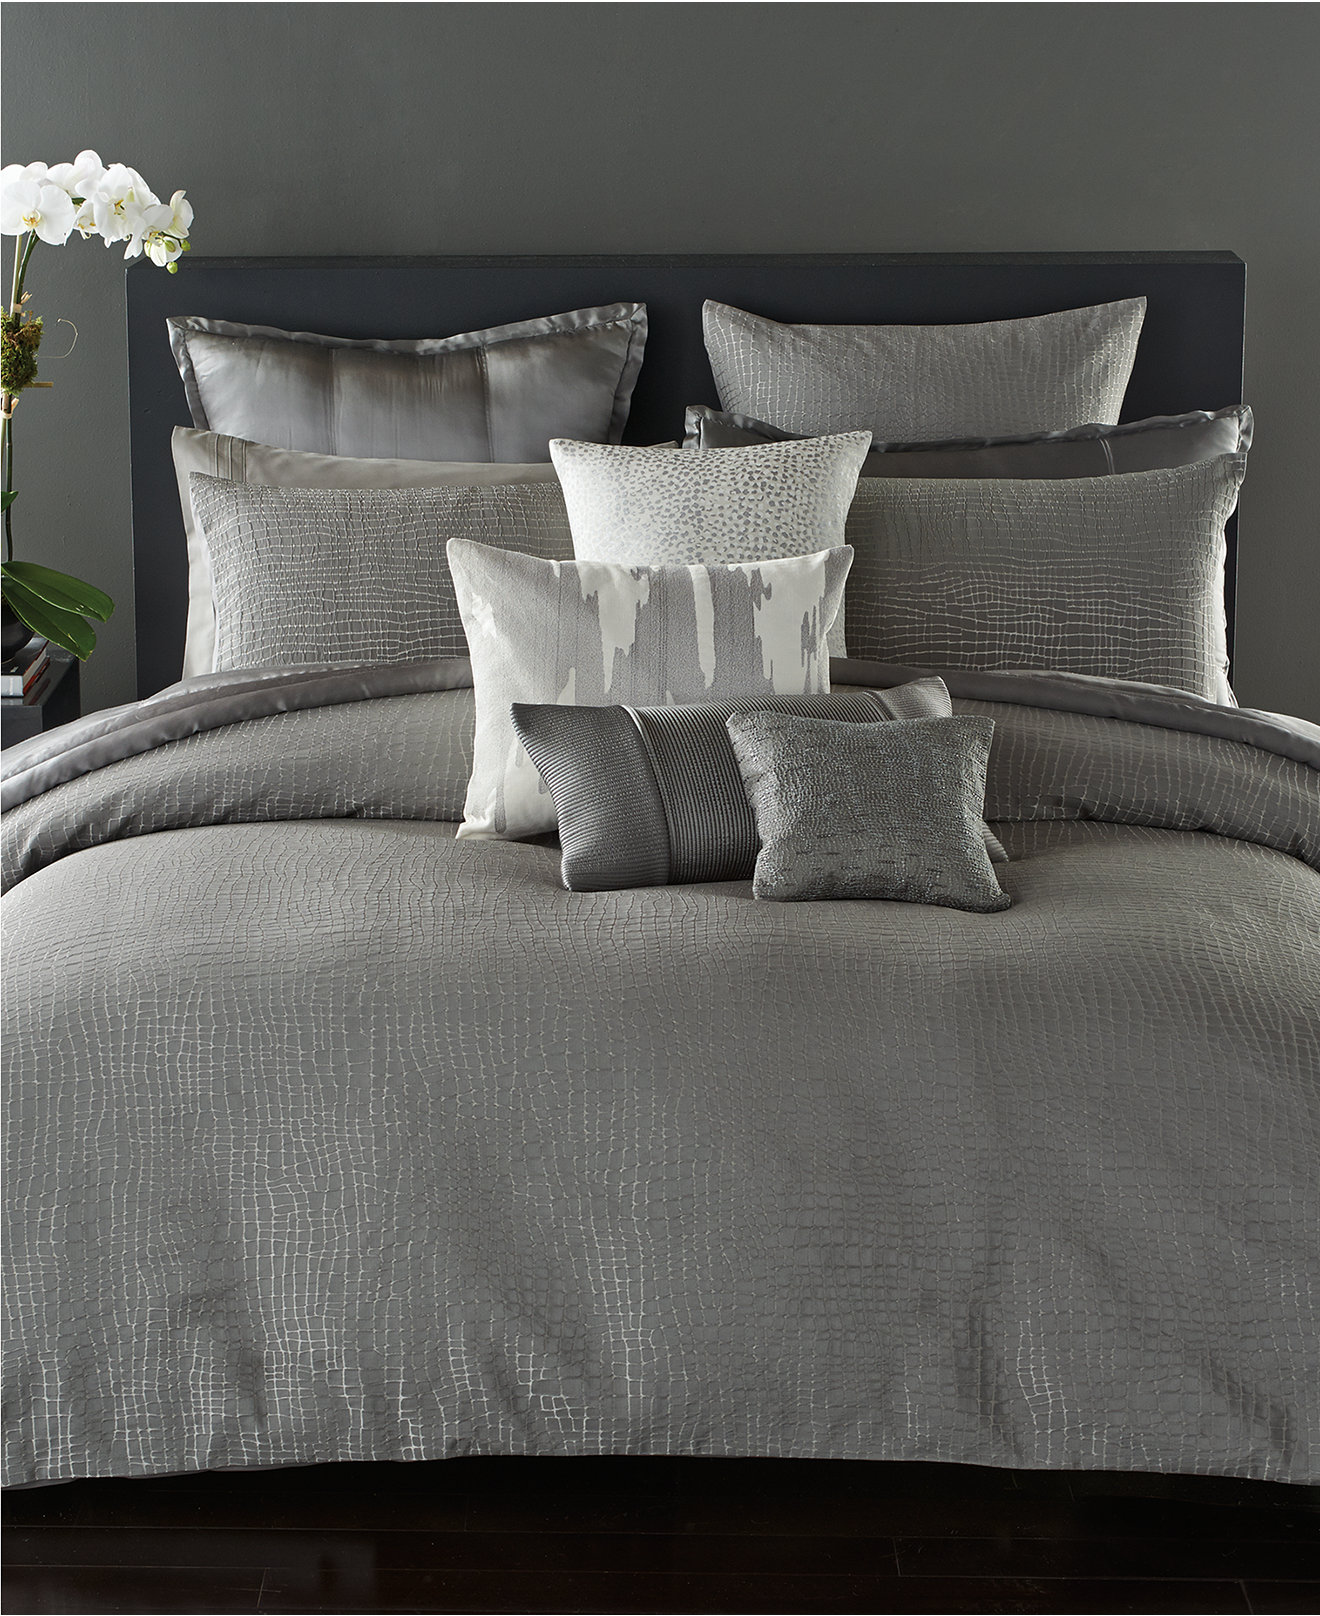 Adorable donna karan bedding with Cushion and pillows also beautiful duvet cover and sidetable and luxury wall paint color